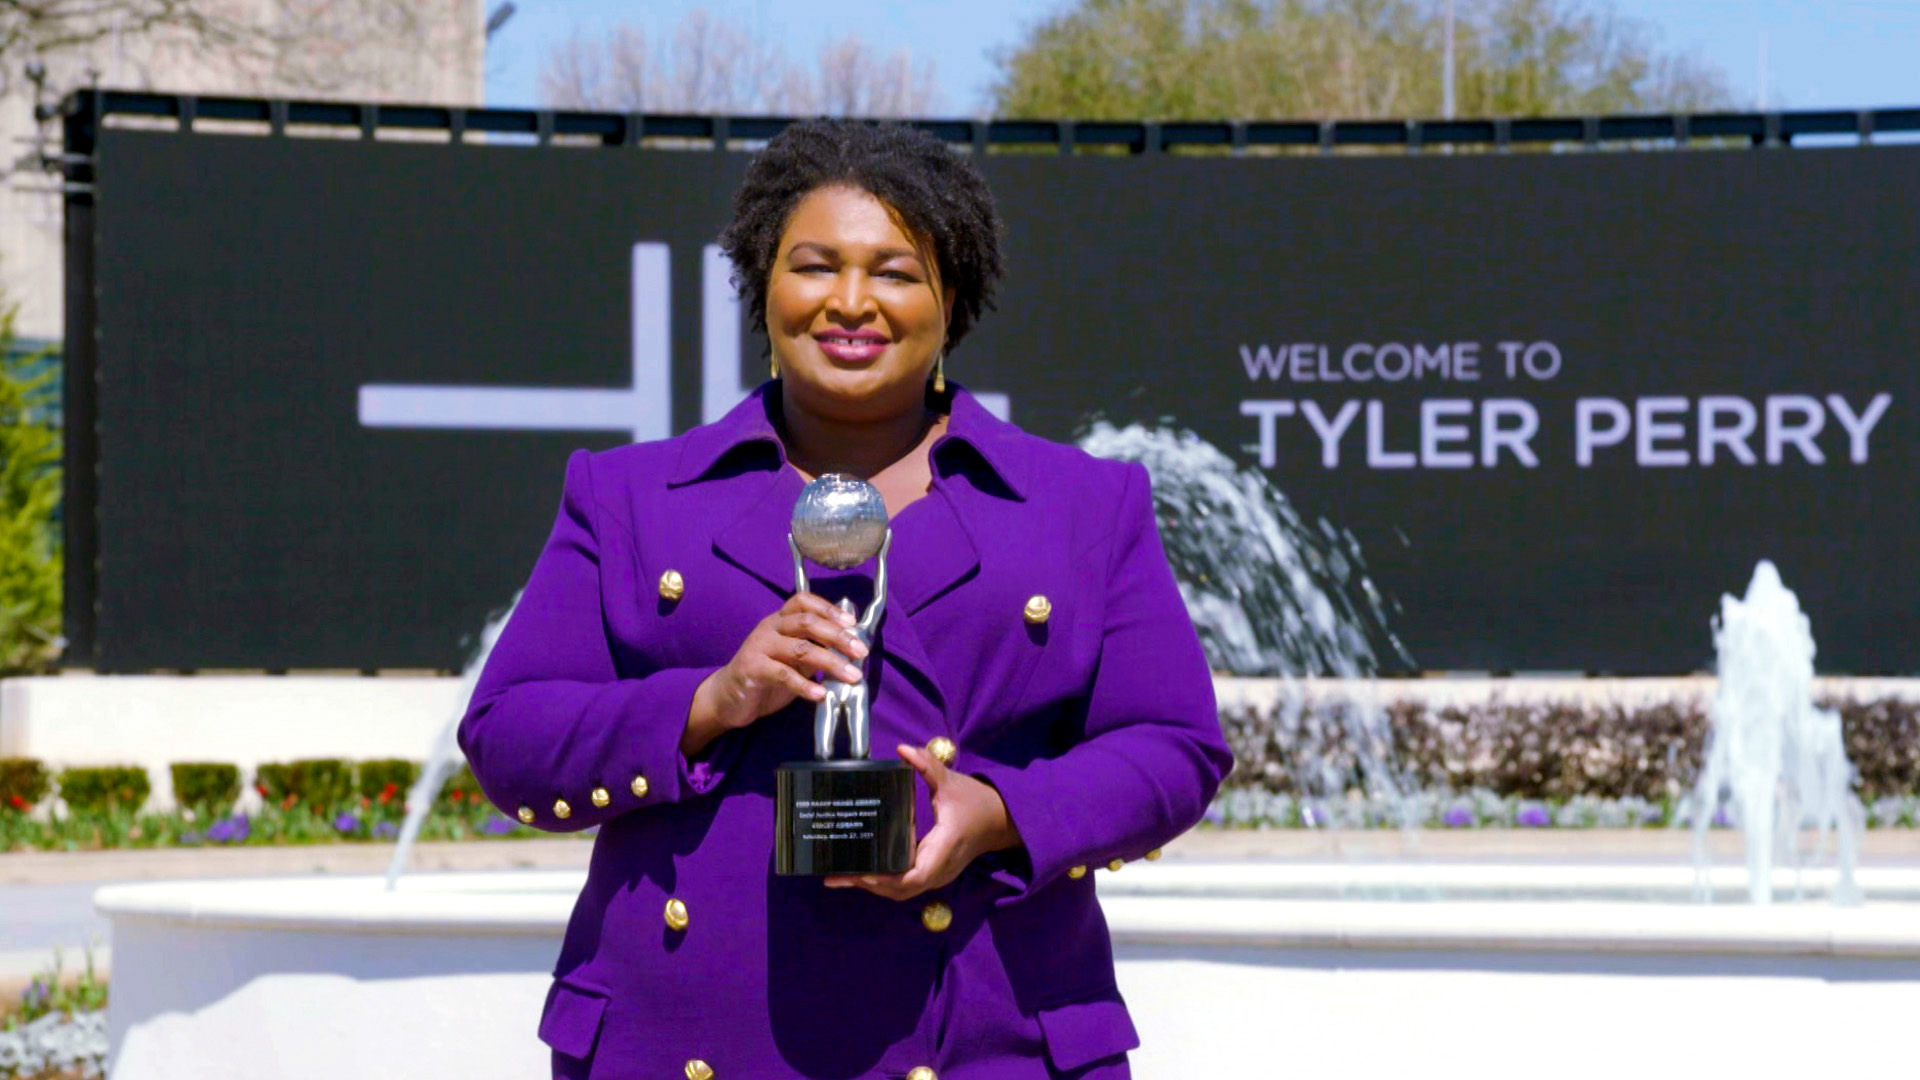 Stacey Abrams' Organization Tells Hollywood To 'Stay and Fight' in Georgia